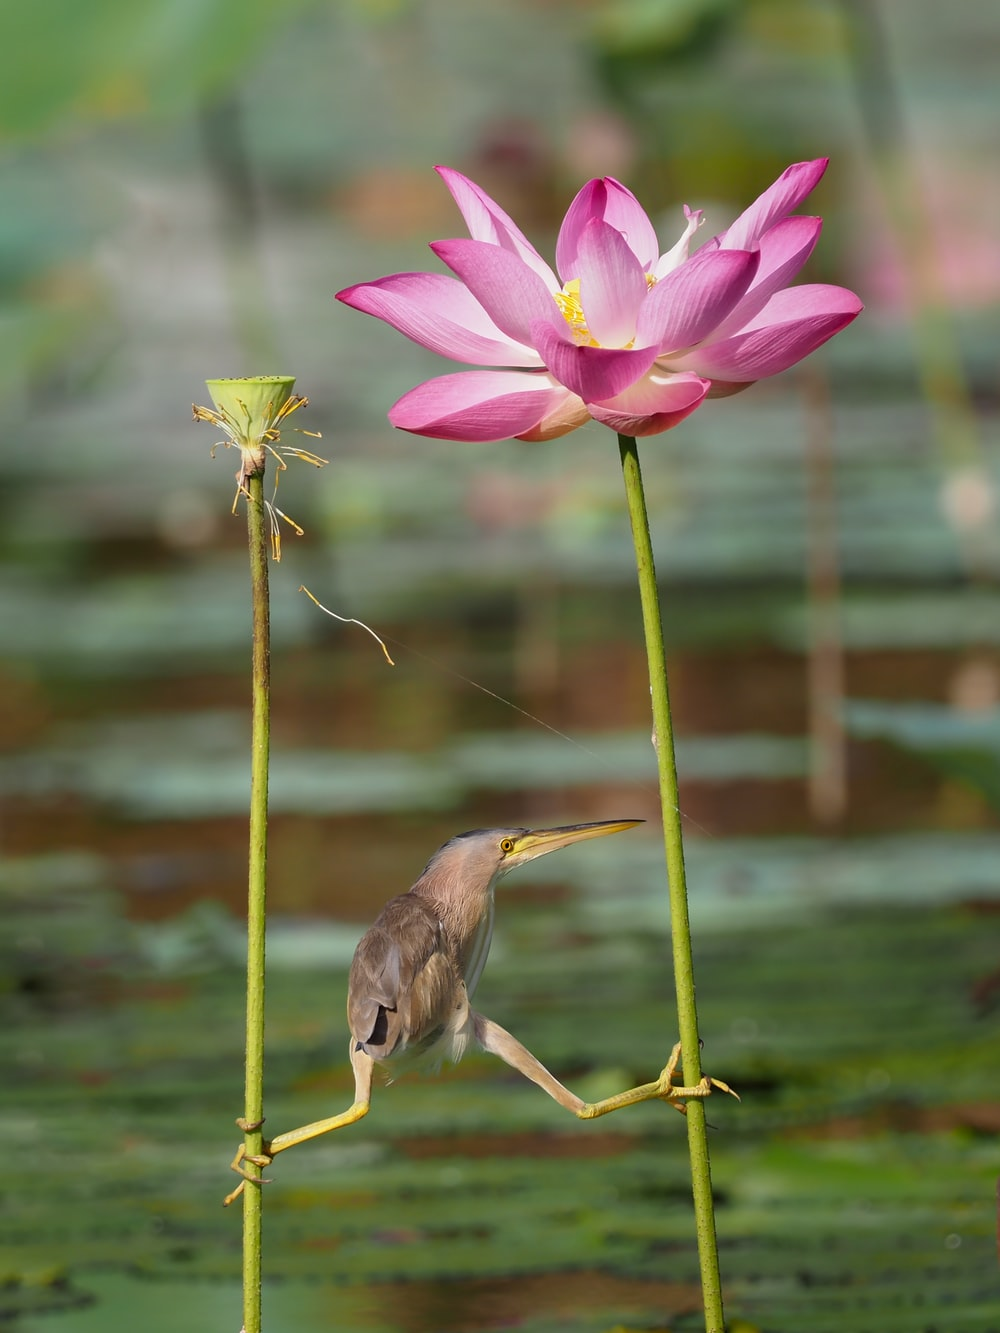 photo of bird holding his leg on pink petaled flower